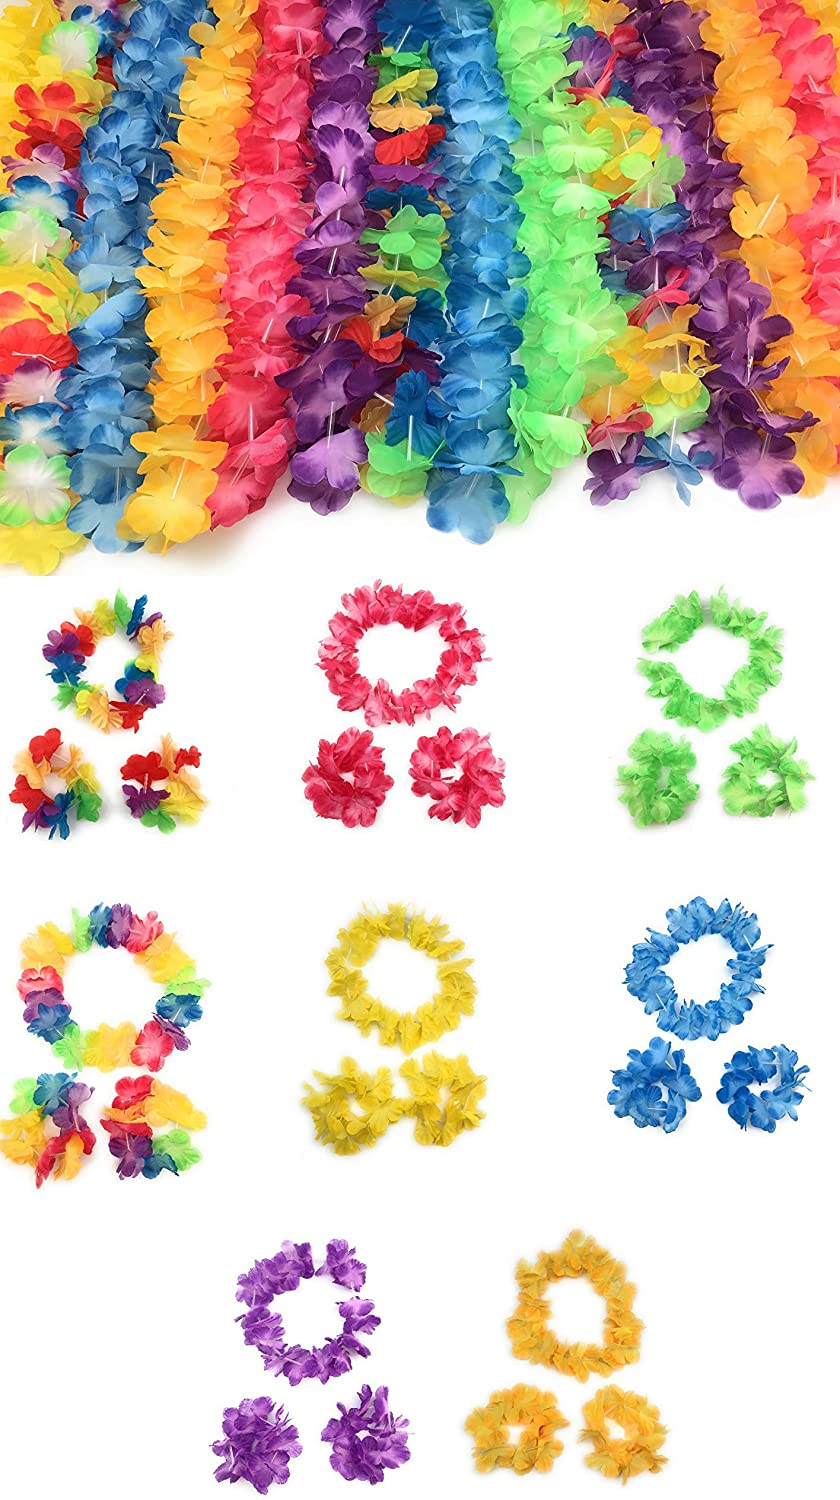 60 Piece Hawaiian Party Leis Includes a Necklace, Headbands and Wristbands,Great For Kids, Adult Party Supplies, Summer Beach Vacation, Theme Party Decorations, Birthday, Wedding, School dances, Hawaiian theme party and many many more | Total of 15 Sets